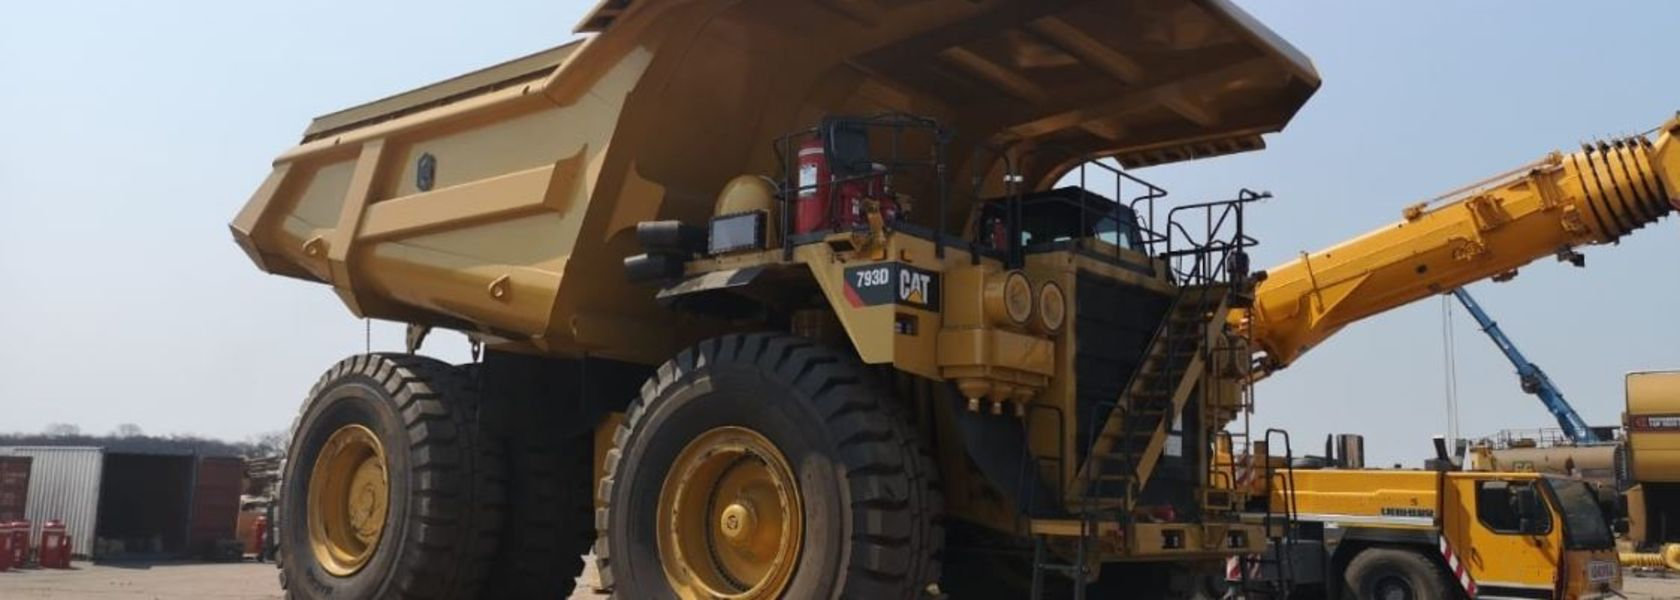 Magna tyres selected for African coal mine